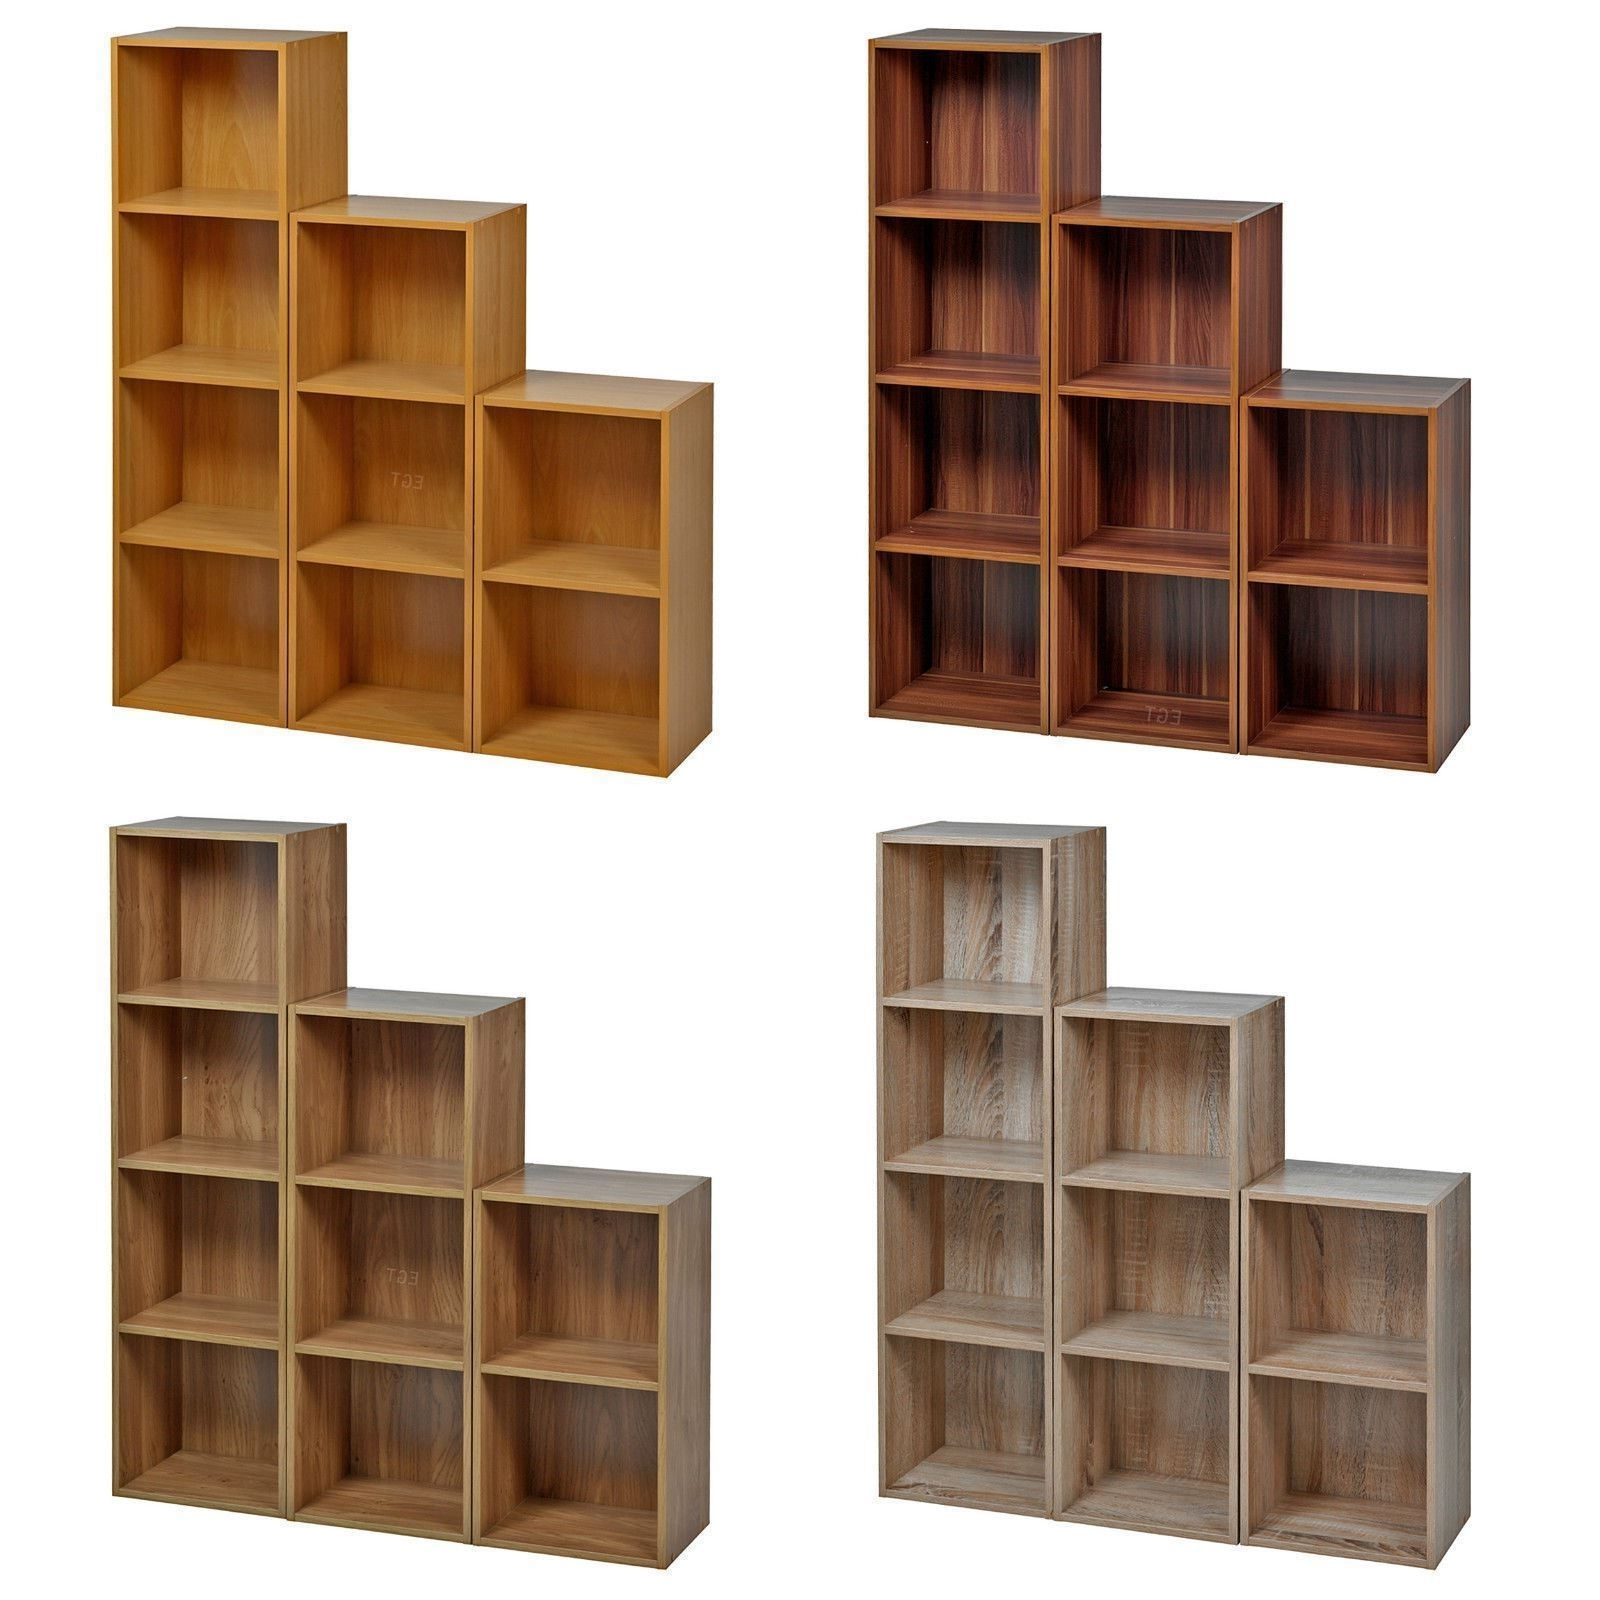 2017 Wooden Bookcases With Regard To 2 4 Tier Wooden Bookcase Shelving Bookshelf Storage Furniture Cube (View 4 of 15)